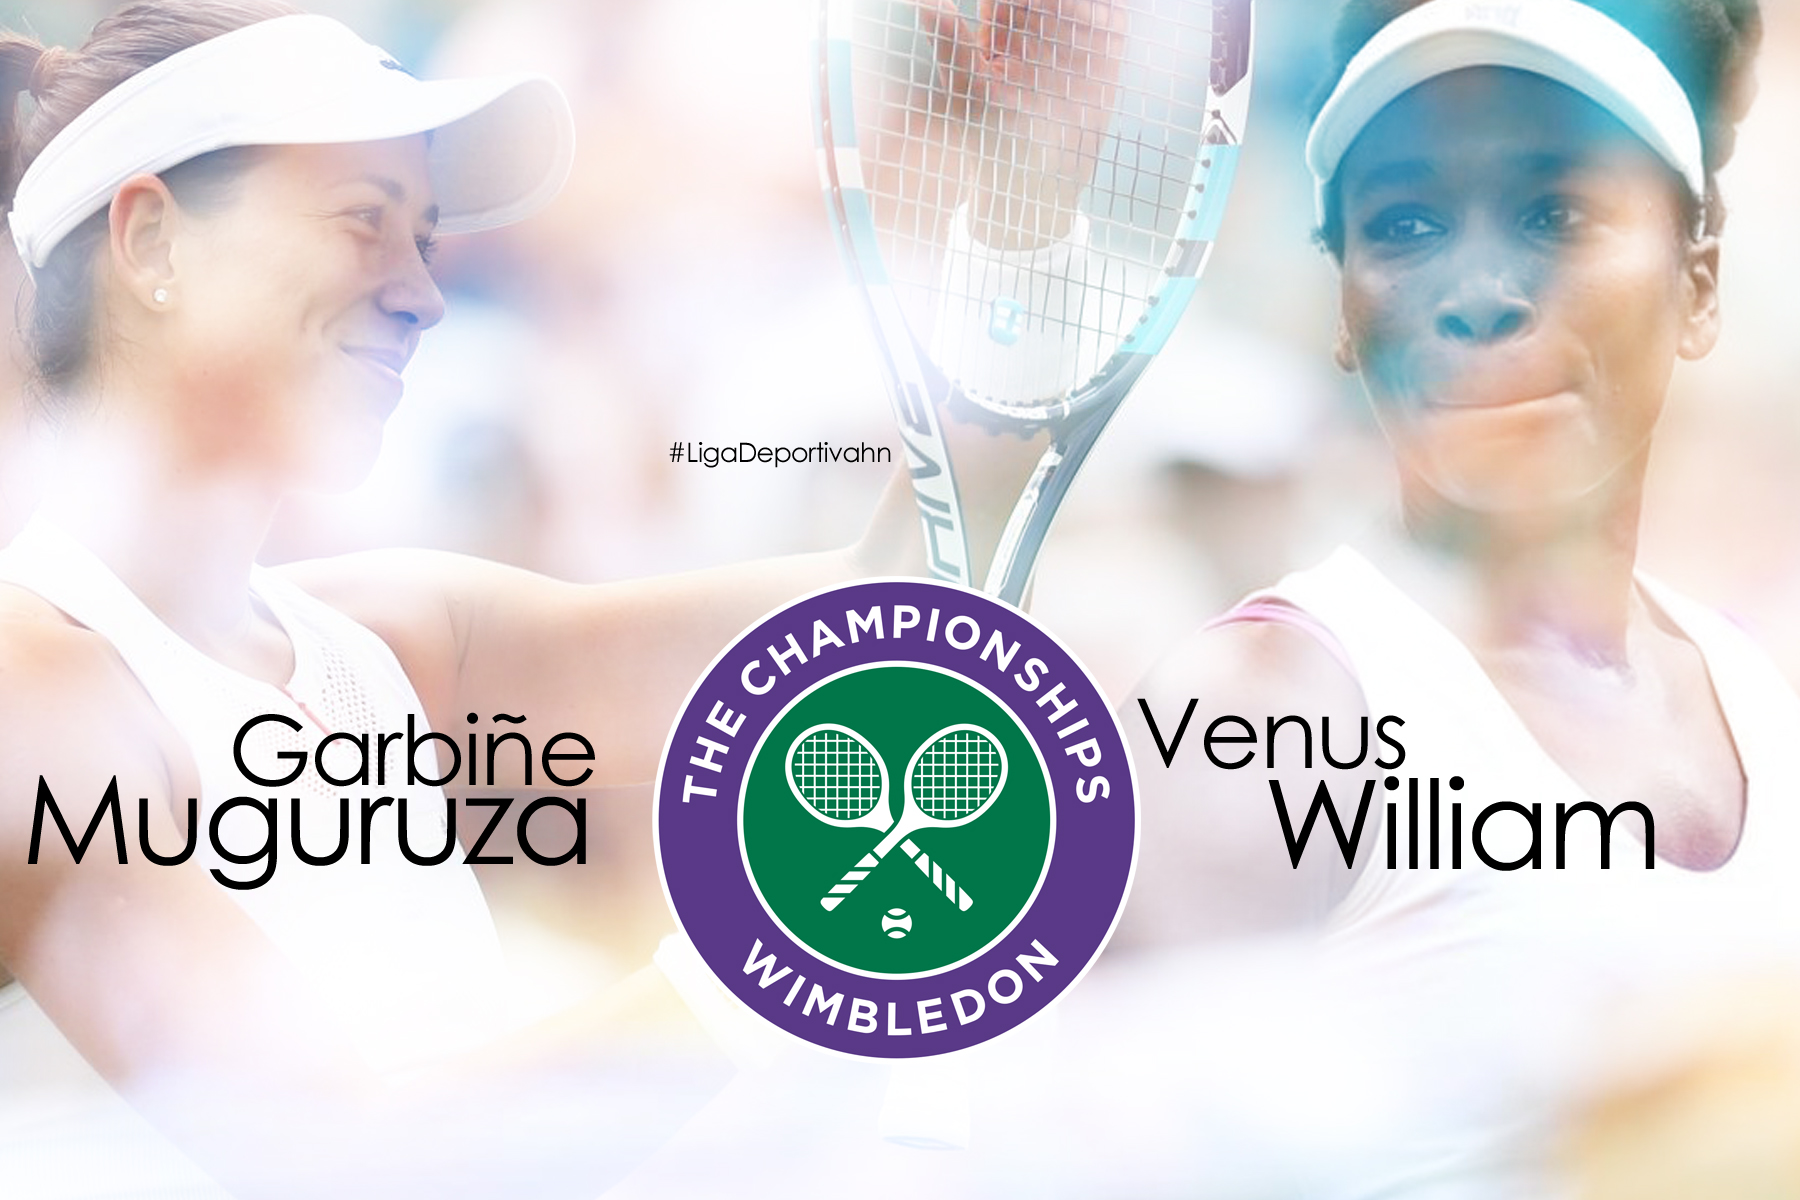 Garbiñe Muguruza y Venus William se enfrentaran en la final de Wimbledon